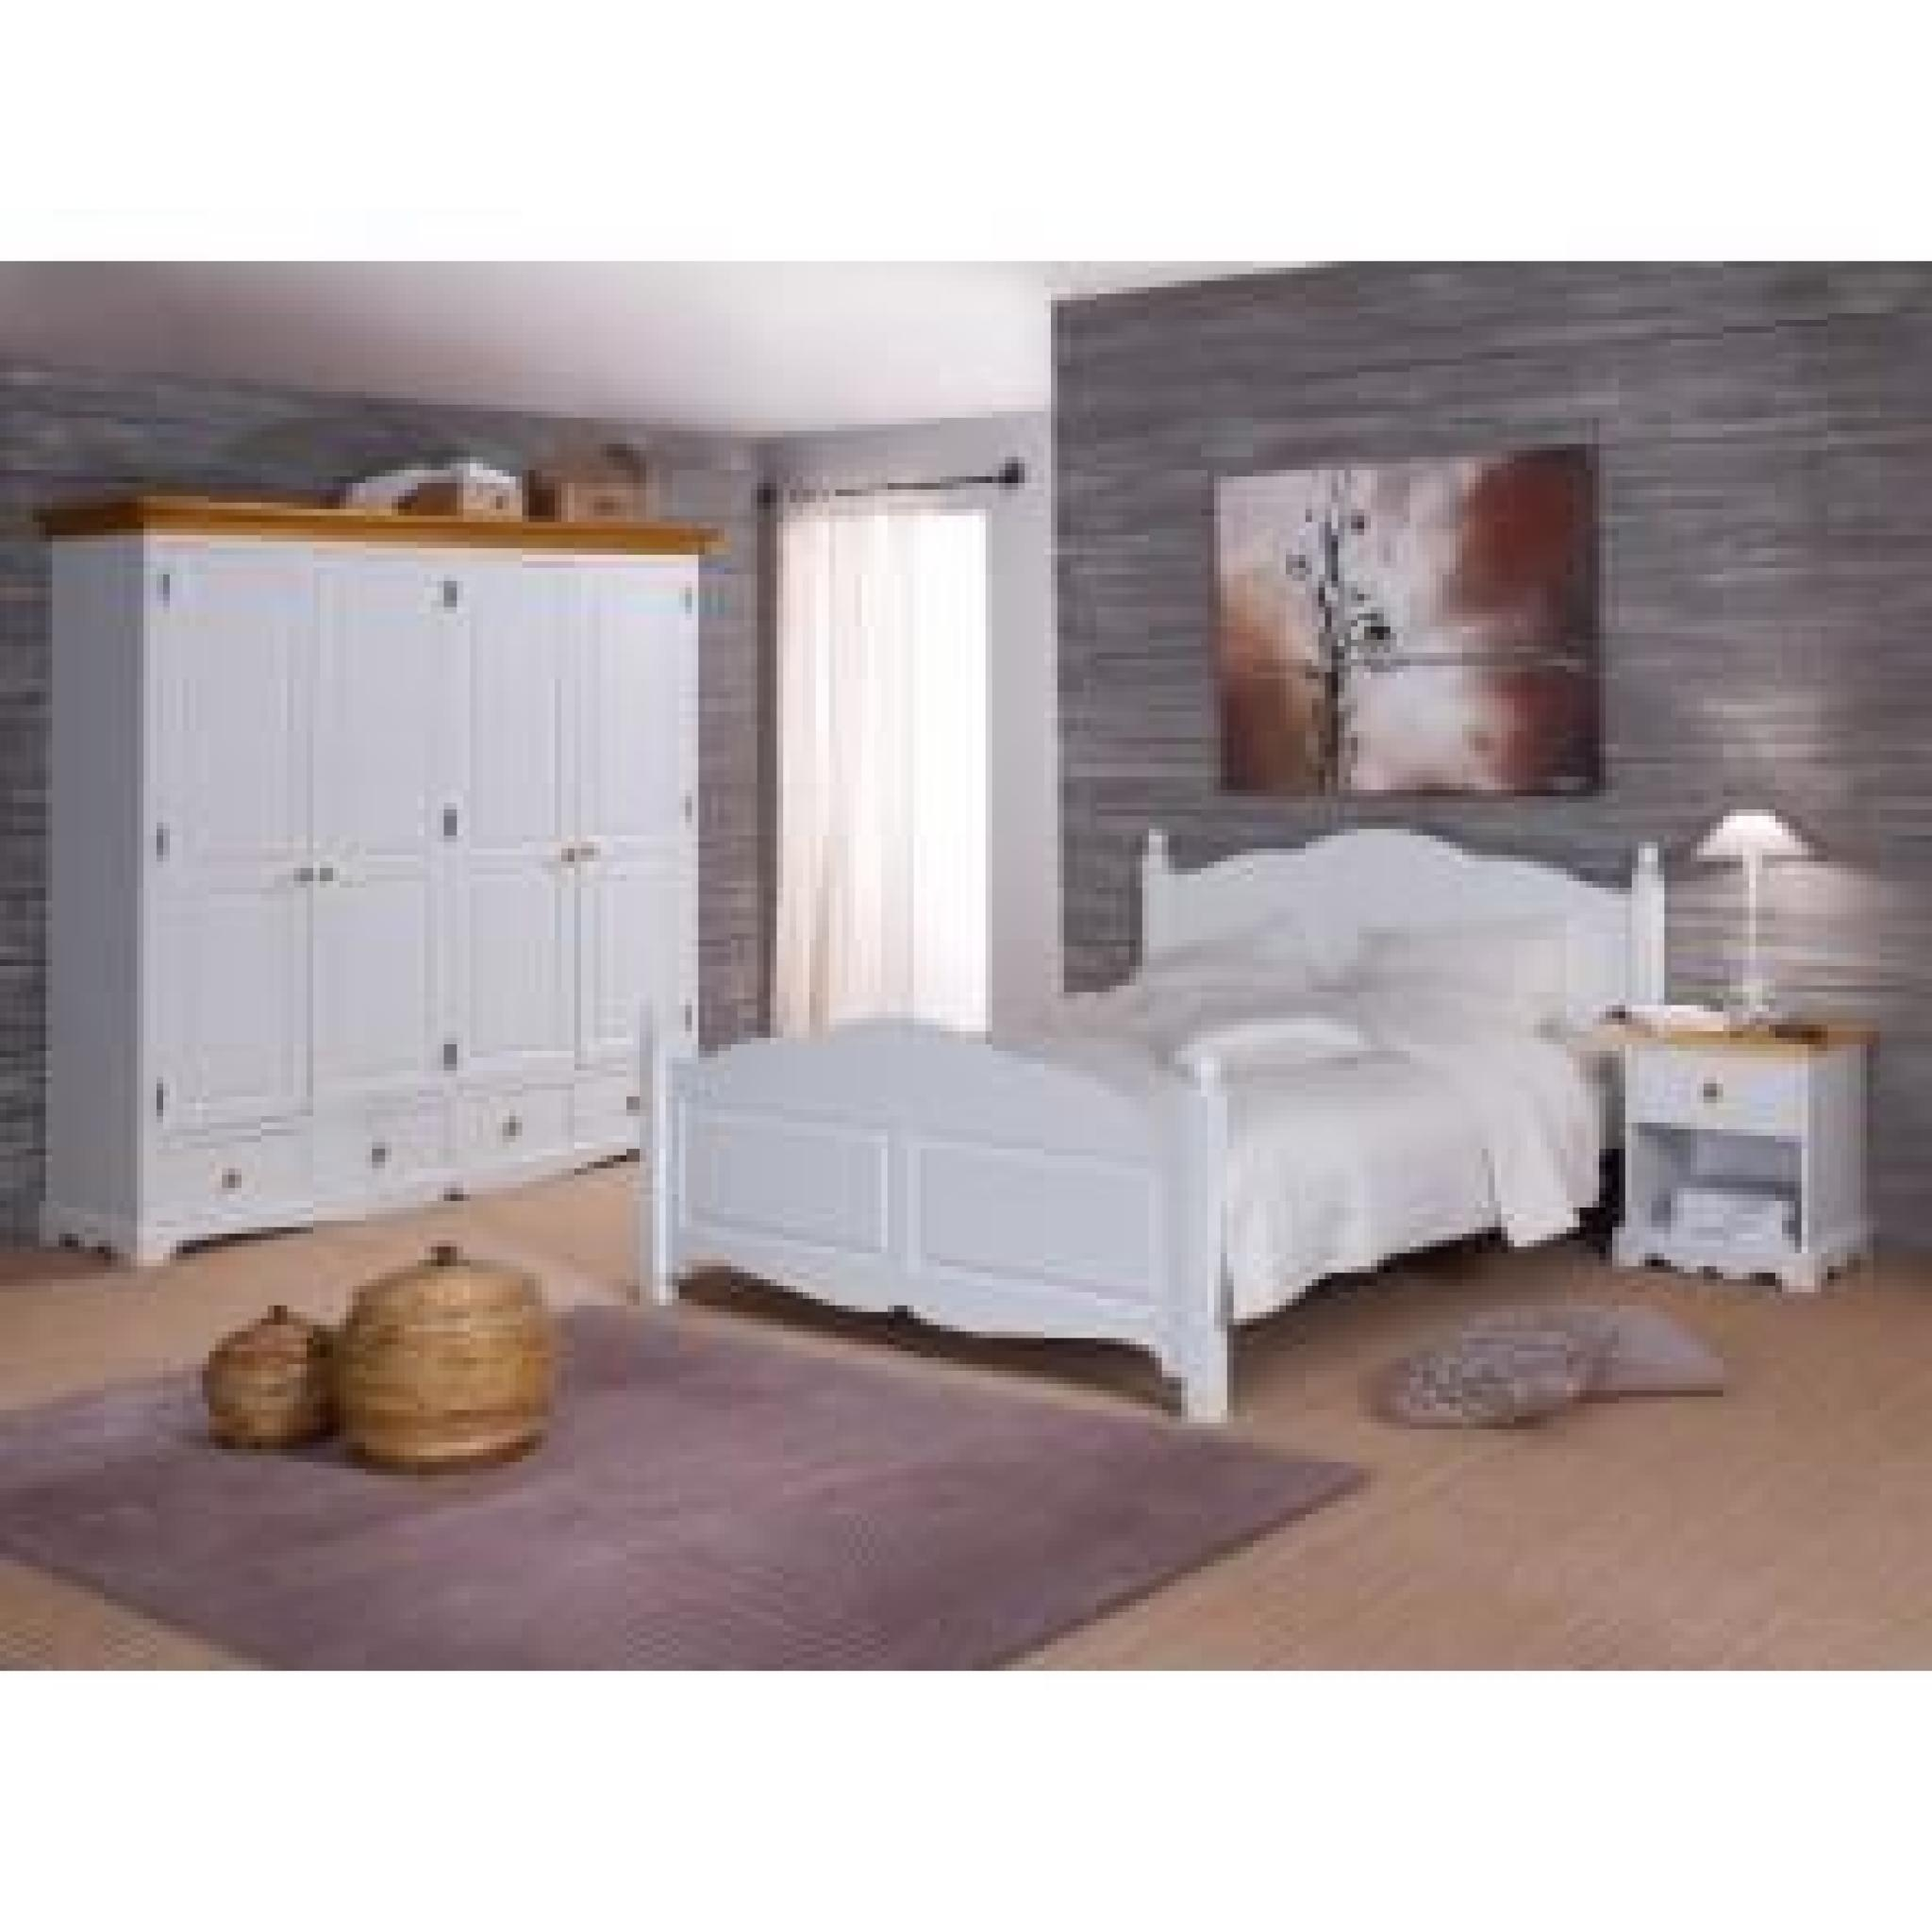 grande armoire penderie blanche et miel achat vente. Black Bedroom Furniture Sets. Home Design Ideas